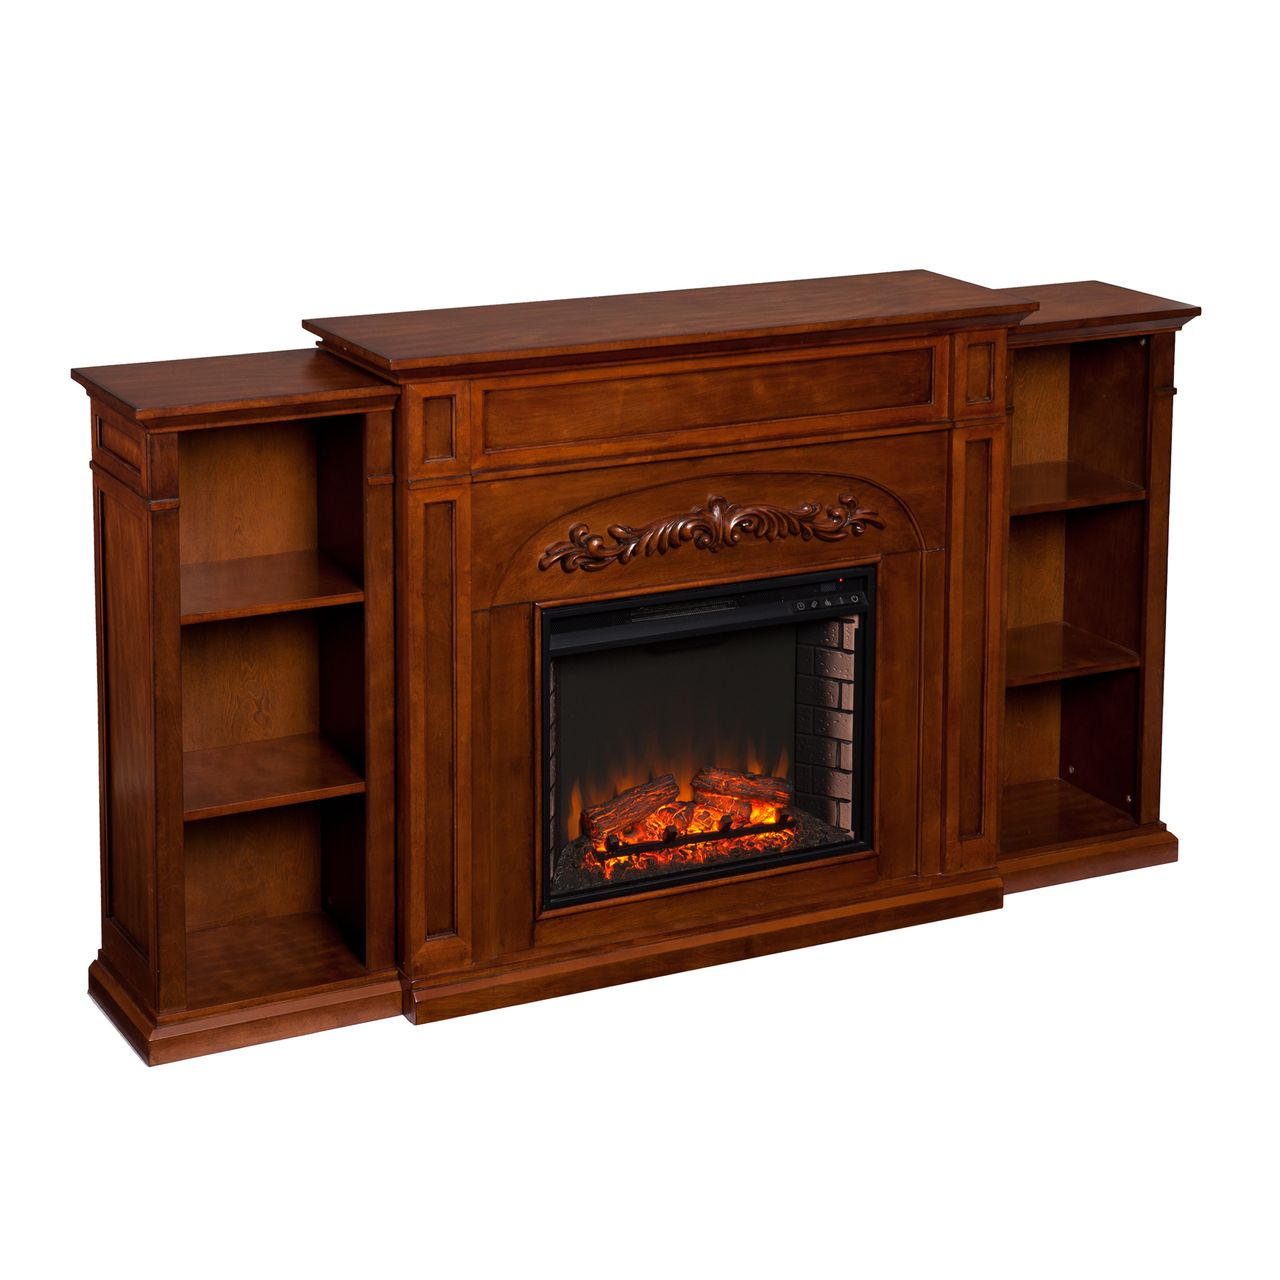 SEI Chantilly FE8532 Electric Fireplace With Bookcases in Autumn Oak